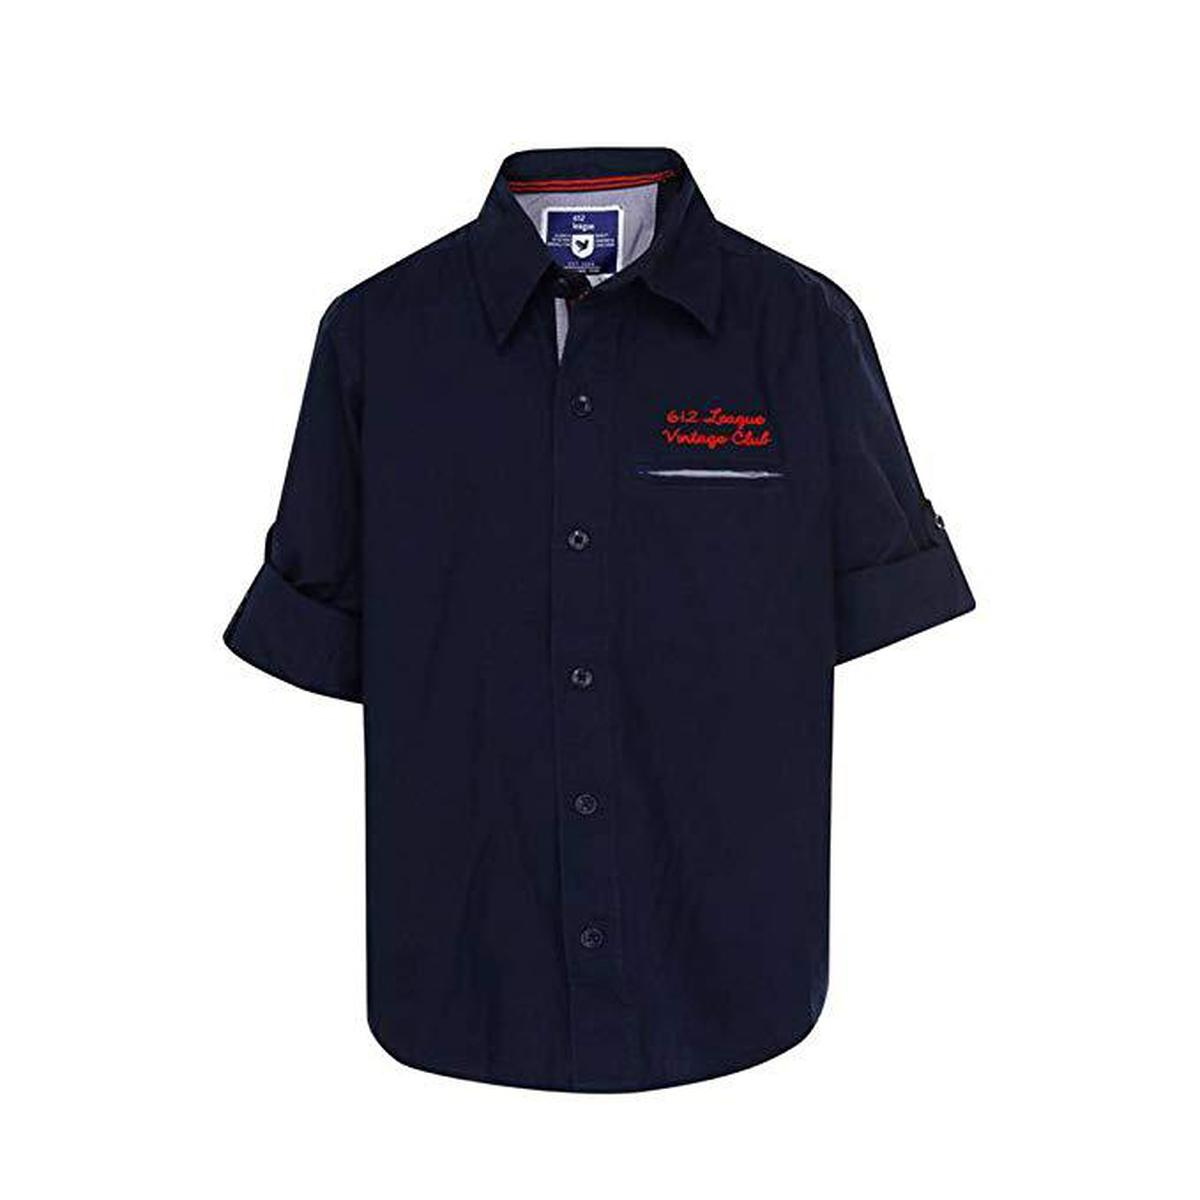 612 League - Boy's Navy Colored Woven Solid Shirt